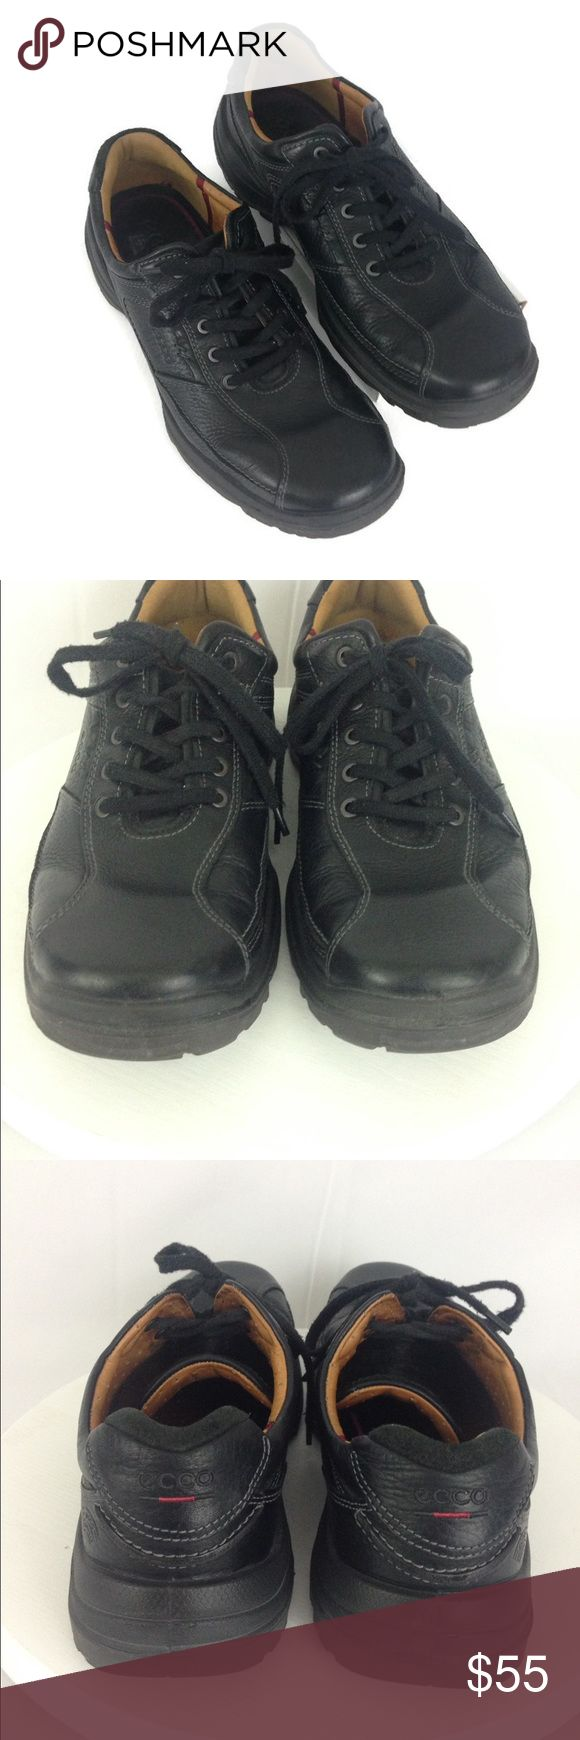 ECCO Men's Casual Black Sz EU 46 US 12-12 1/2 EccoMen's Country Tie Casual Shoes Style #40001 Size: EU 46 US 12-12 1/2 Color: Black Condition: Pre-owned, good condition with normal wear.  Please see images for a visual description. Material: •Upper combination of oil suede, oiled nubuck and leather •Leather lining •Latex outsole This and all of my listings are stored in a smoke-free environment. Please contact me with any questions you may have. Ecco Shoes Oxfords & Derbys